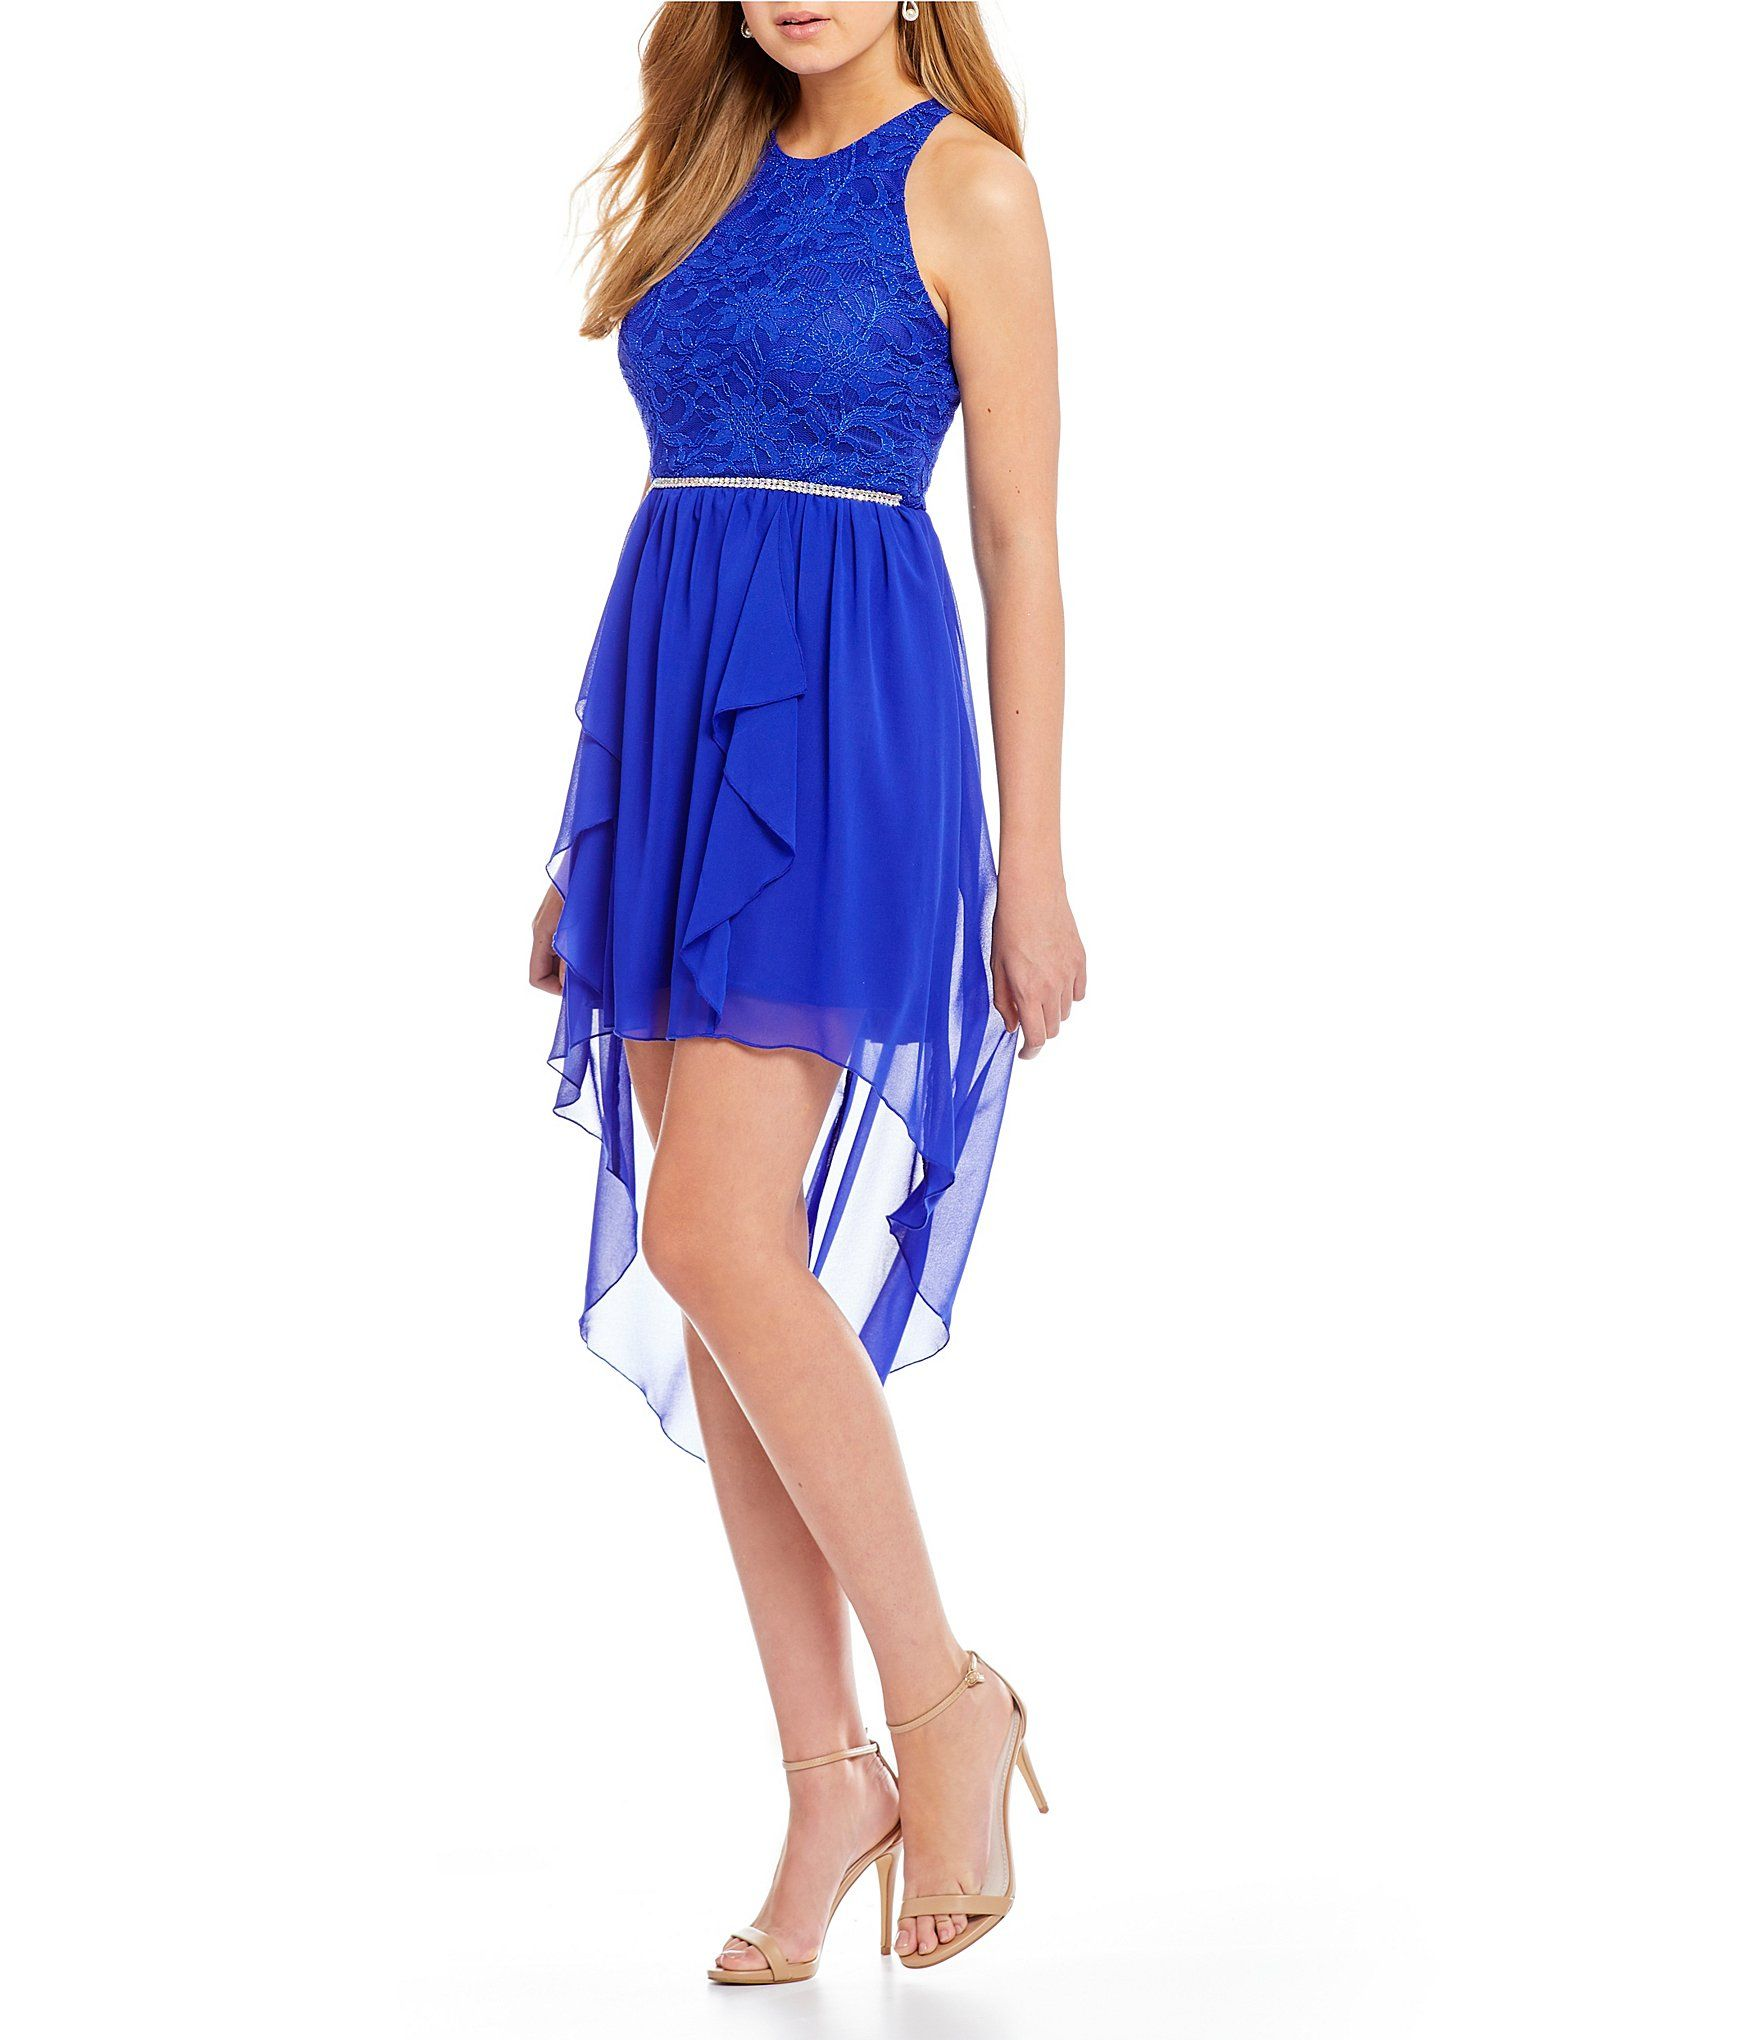 Shop for jodi kristopher lace bodice highlow dress at dillards